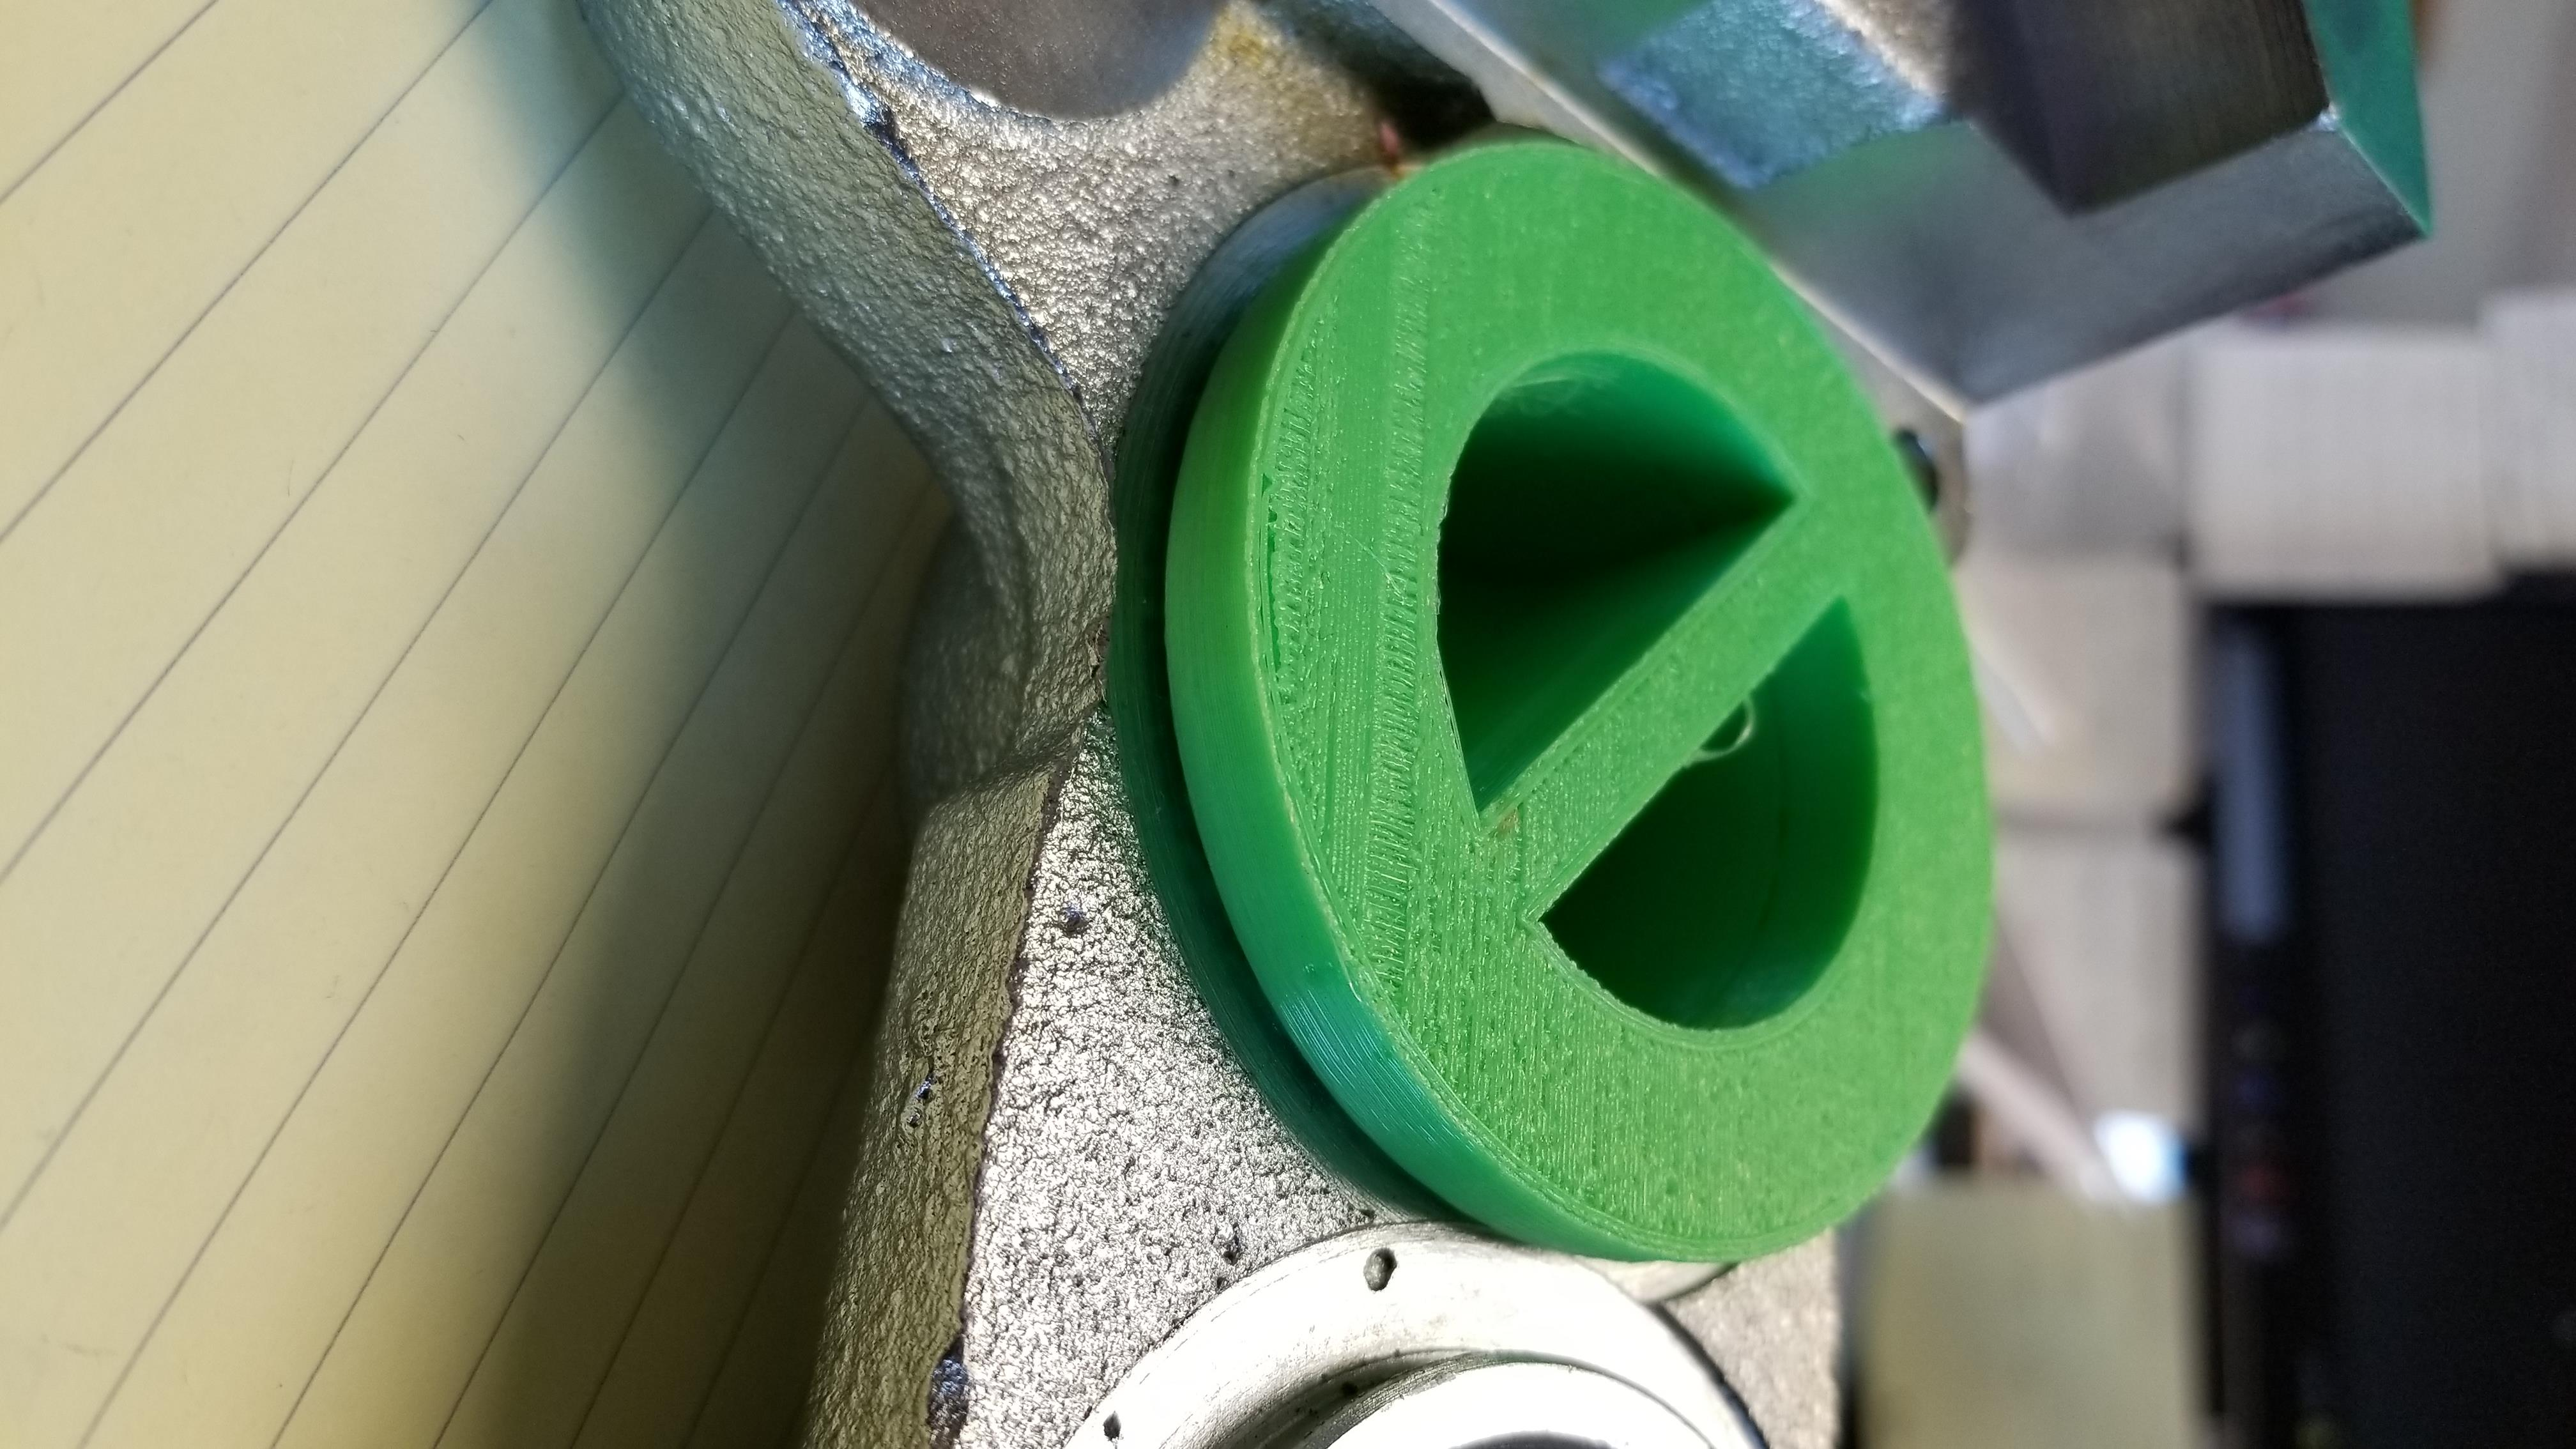 Brake caliper with flexible filament 3D printed prototype masking plug